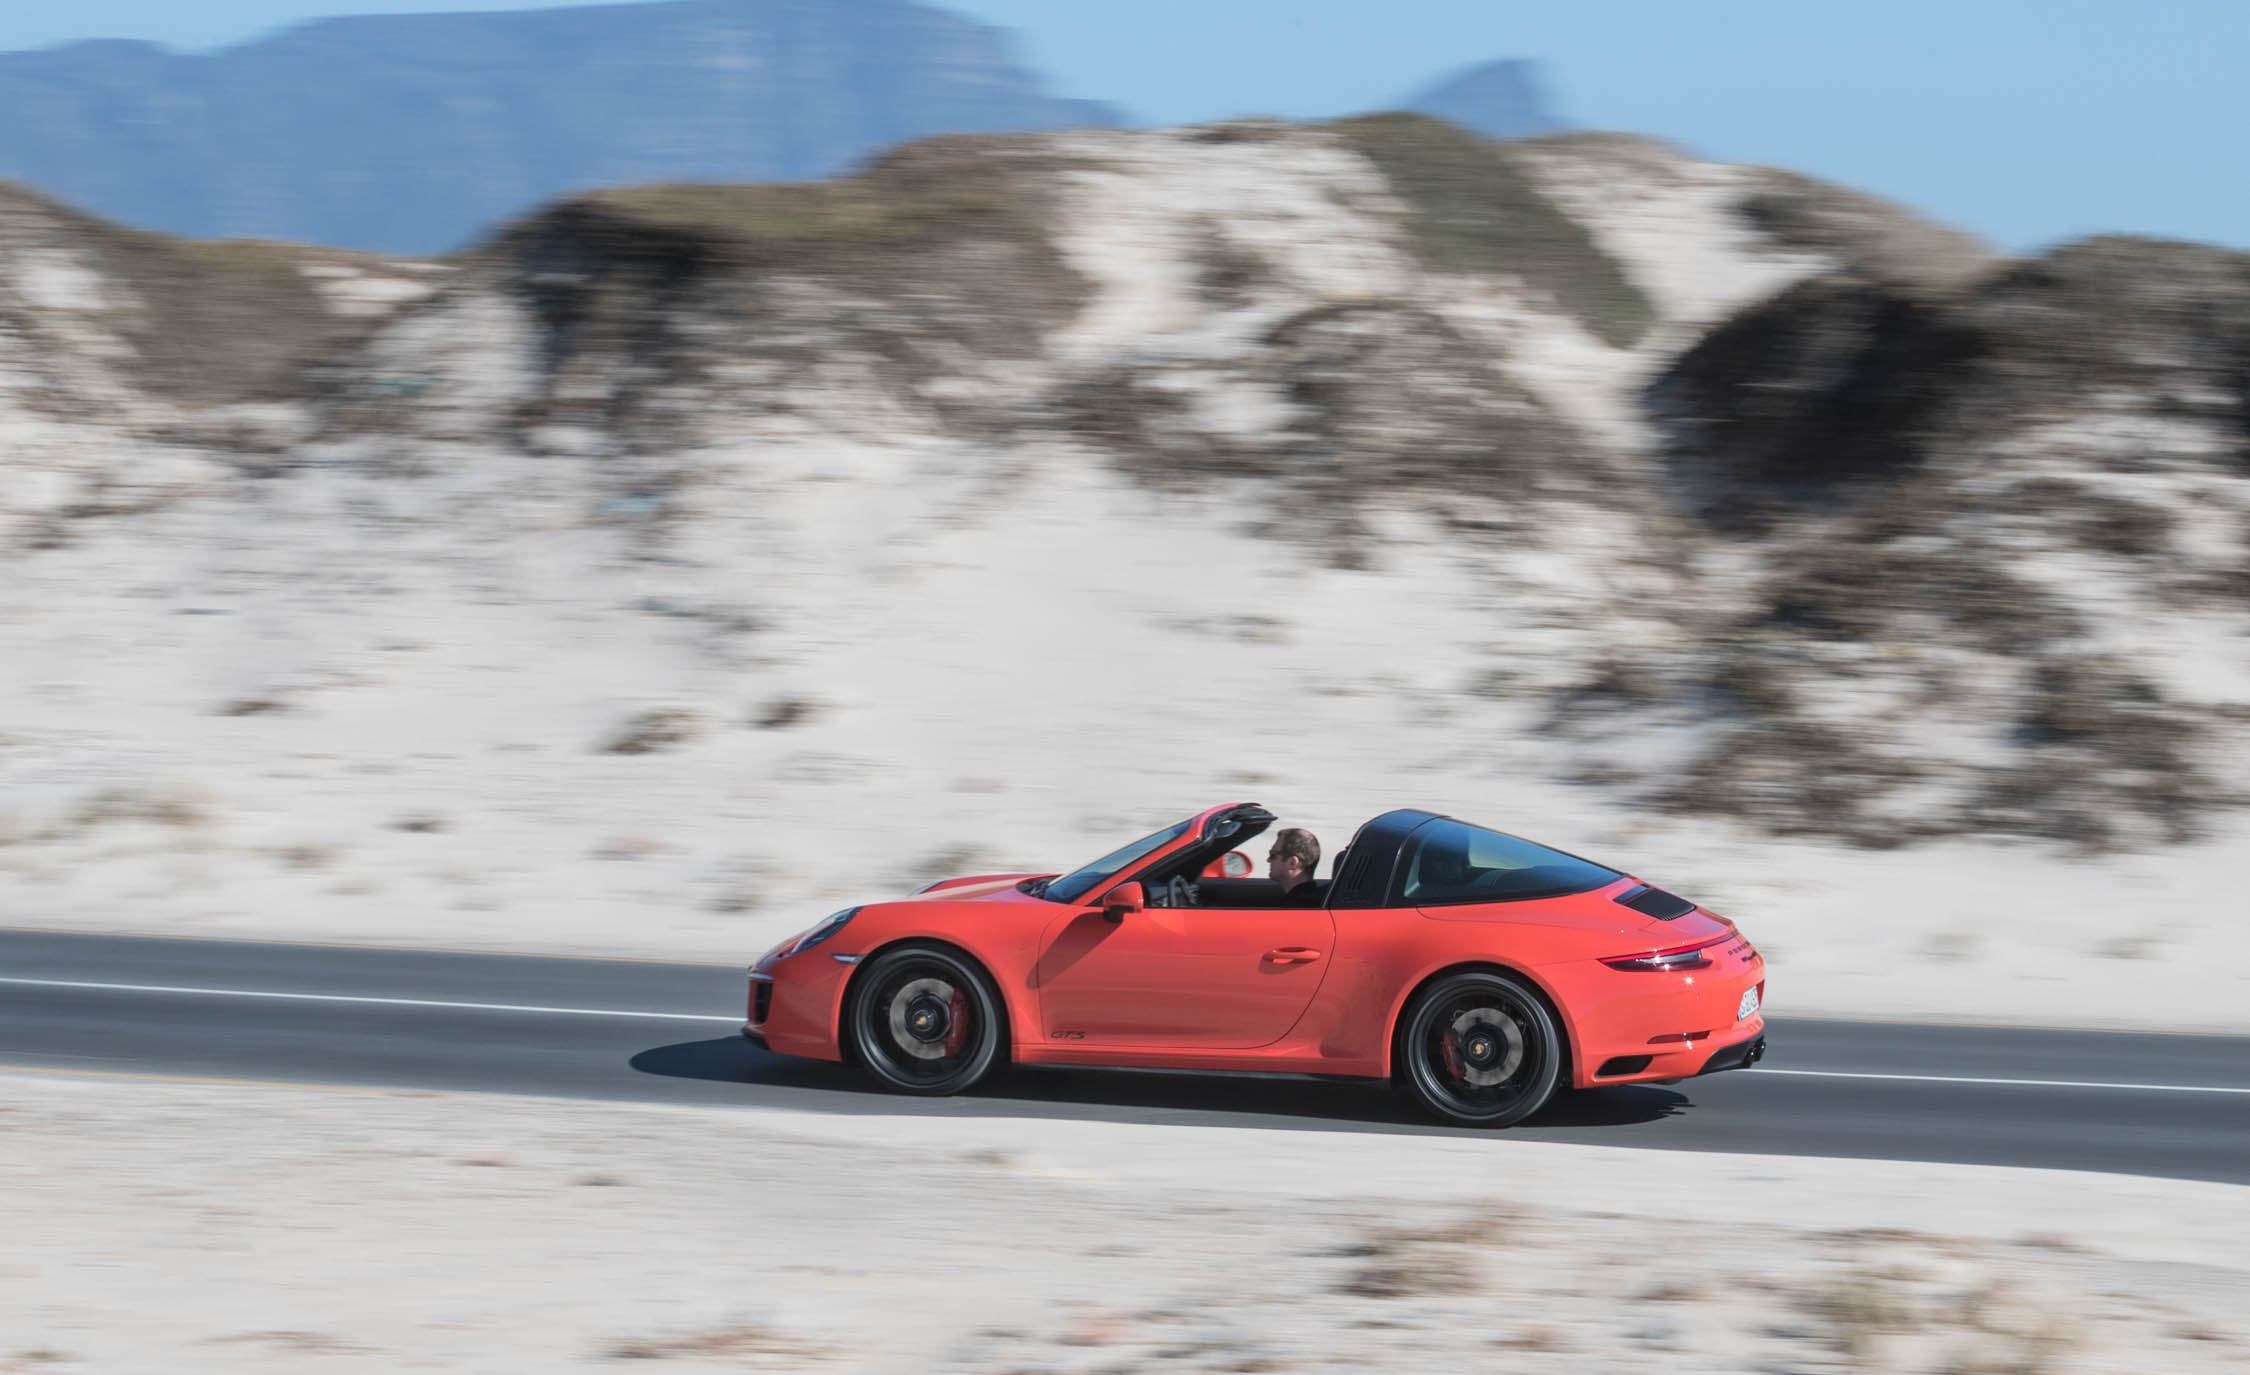 2017 Porsche 911 Targa 4 GTS Test Drive Side View (Photo 97 of 97)